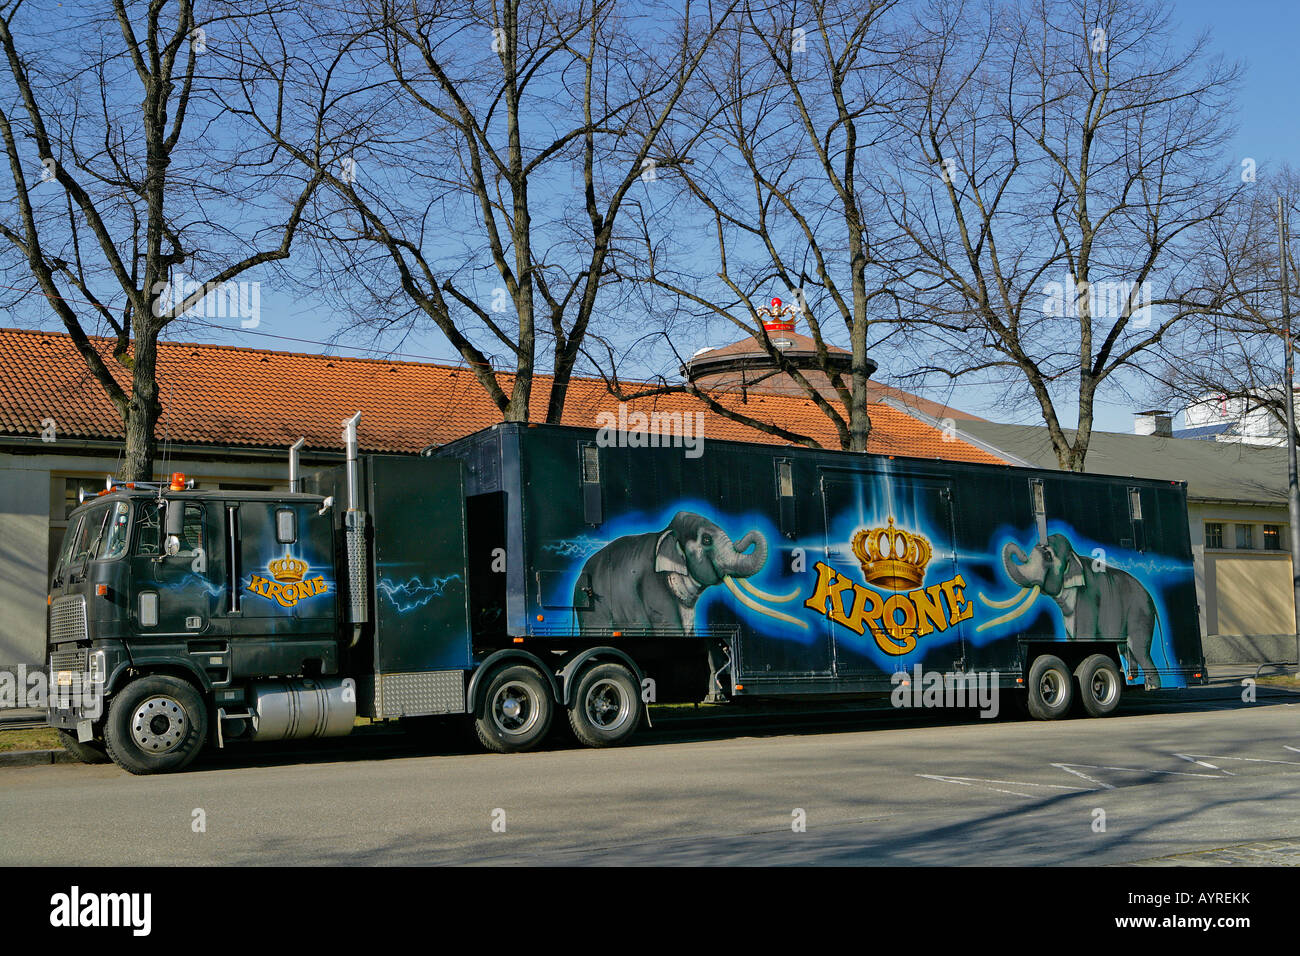 truck used to transport circus animals circus krone munich stock photo 17168262 alamy. Black Bedroom Furniture Sets. Home Design Ideas